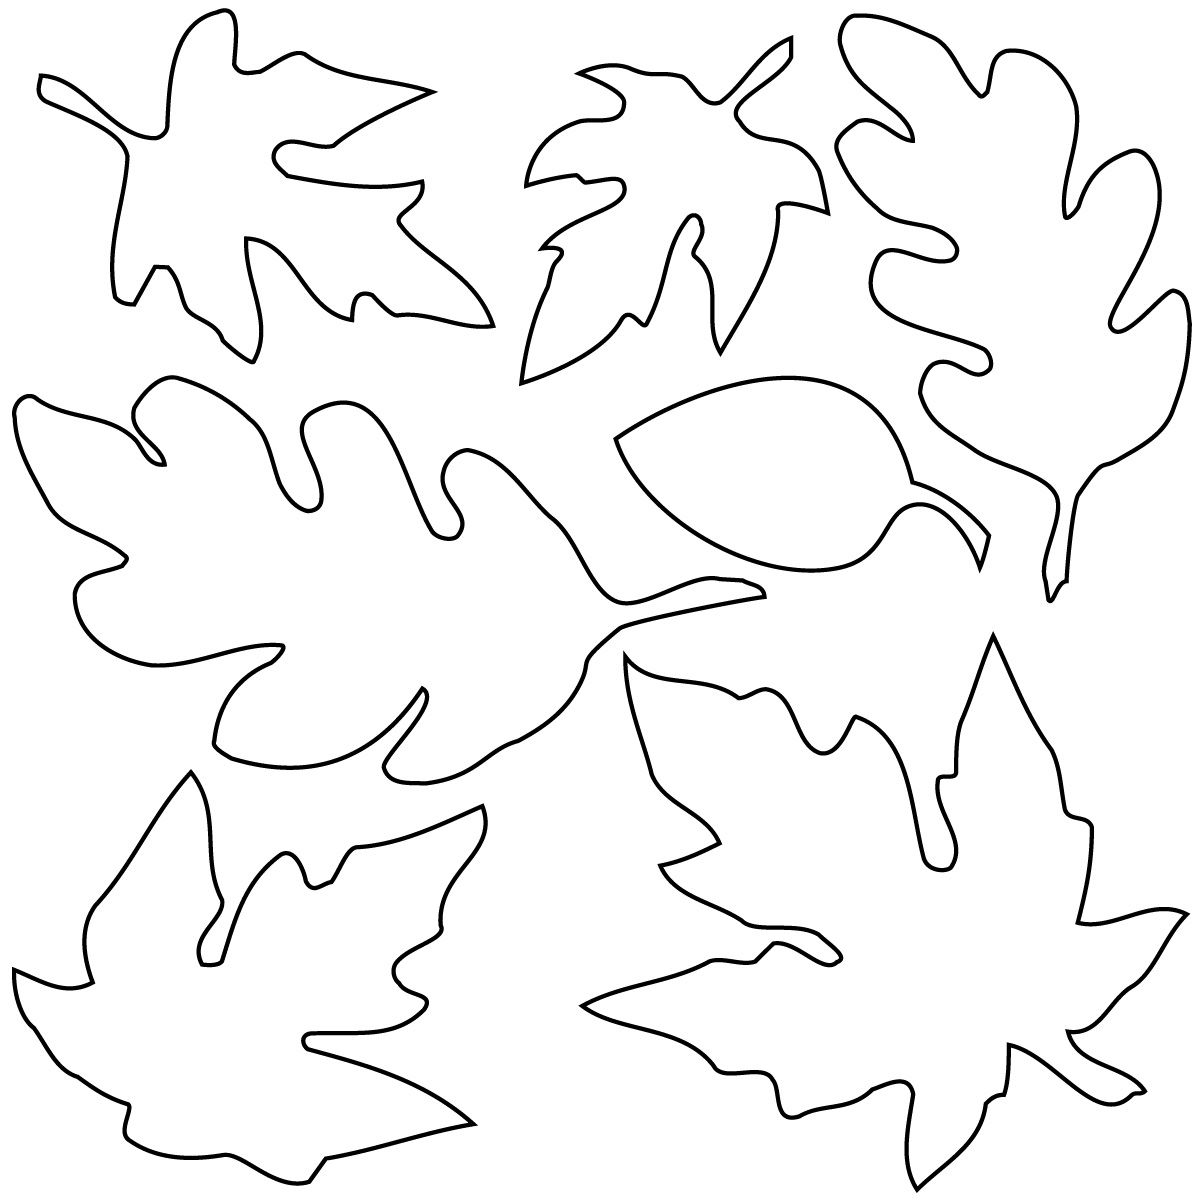 1200x1200 Related Leaf Coloring Pages Item Leaf Coloring Pages Fall